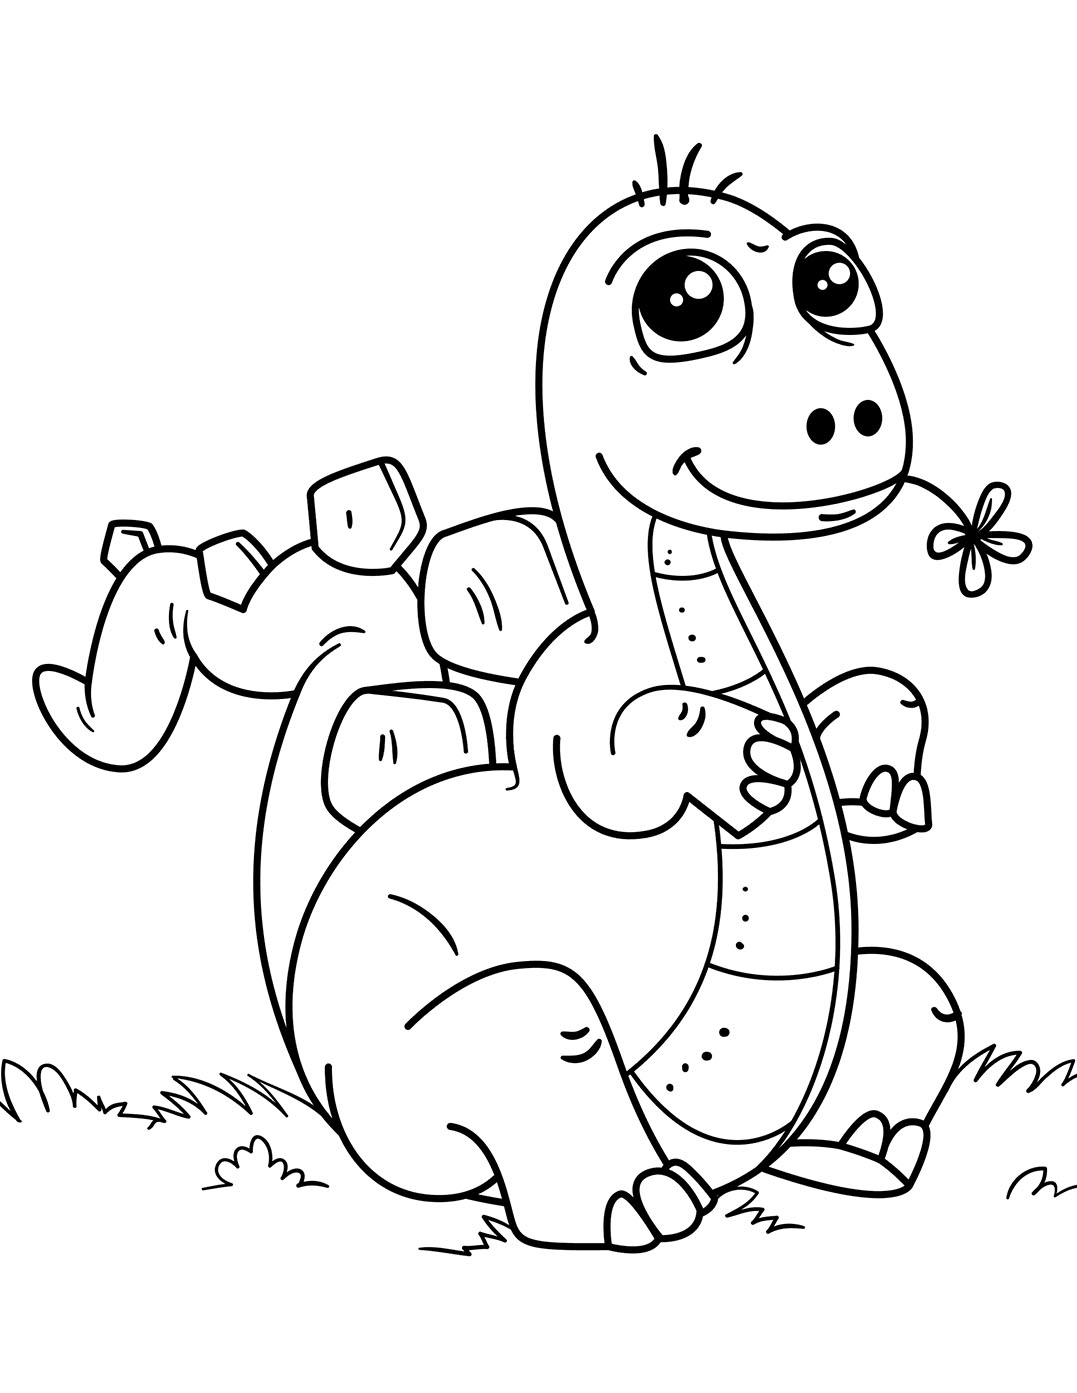 simple dinosaur coloring pages dinosaurs to color for kids ba dinosaurs kids coloring dinosaur coloring pages simple